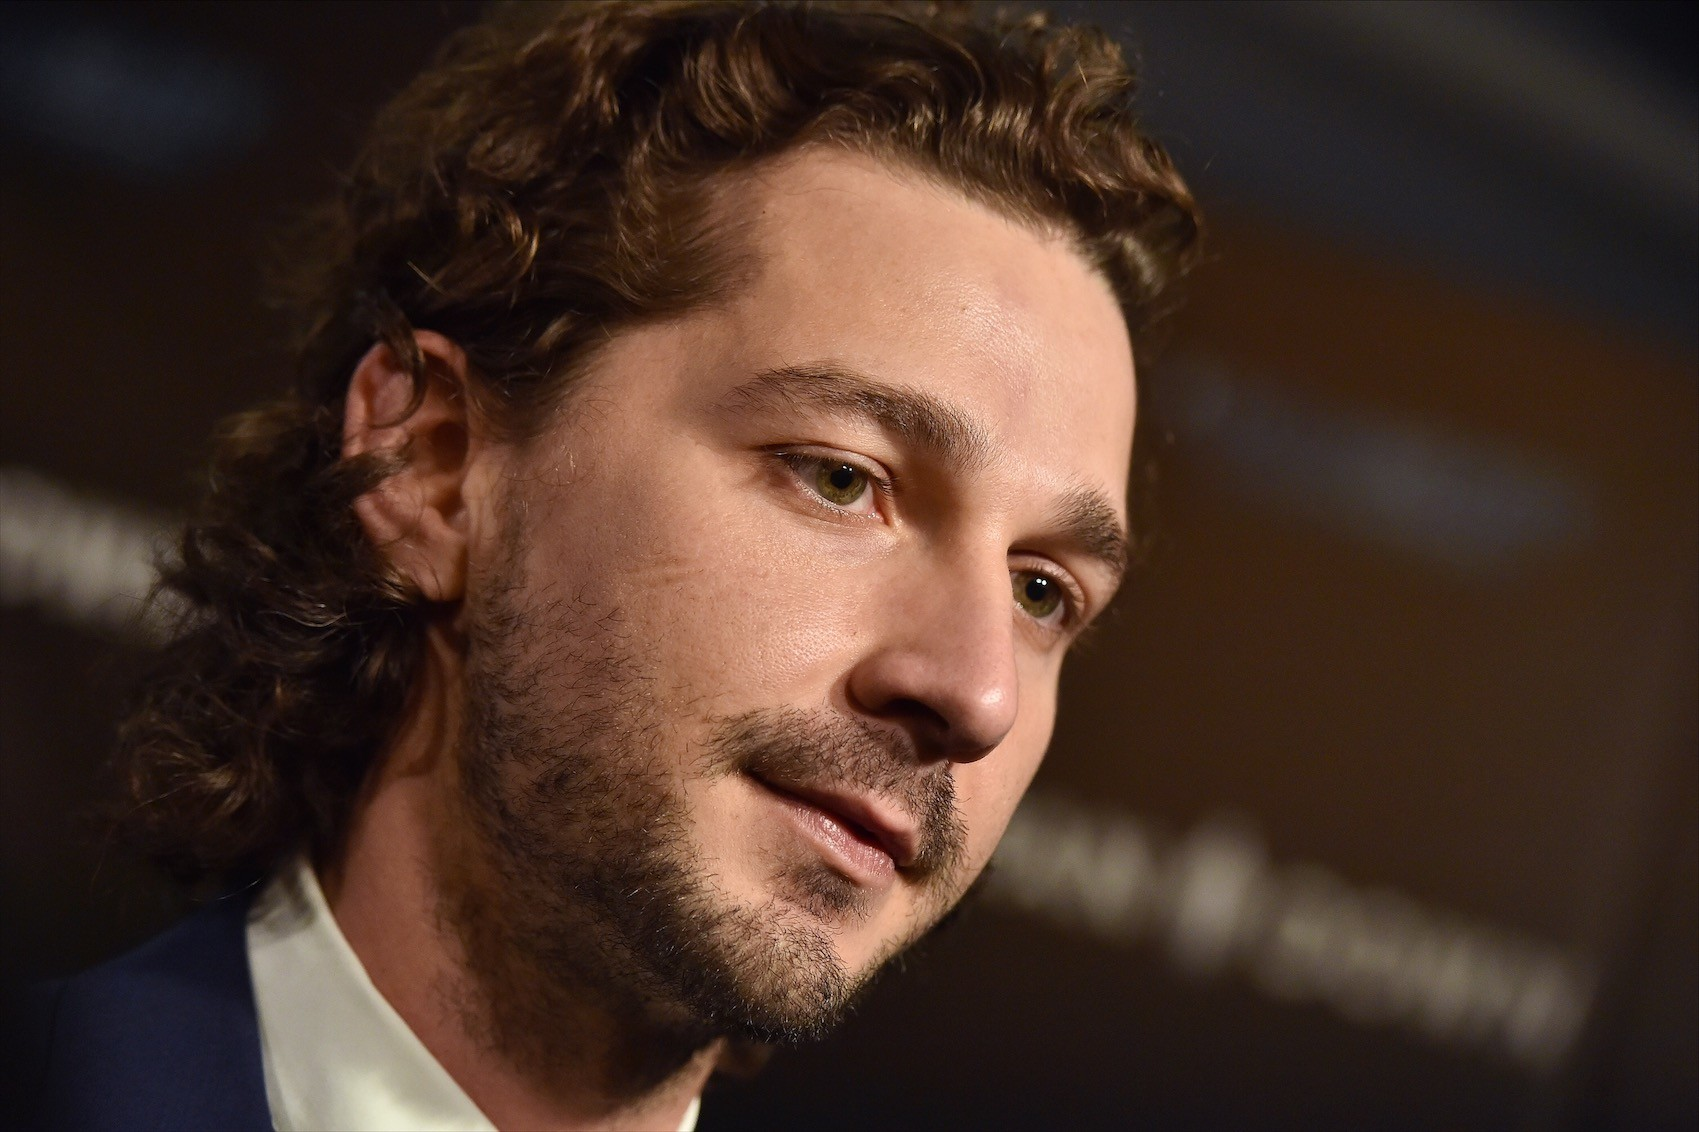 Shia LaBeouf attends the premiere of 'Man Down' at ArcLight Hollywood on Nov. 30, 2016 in Hollywood, Calif.